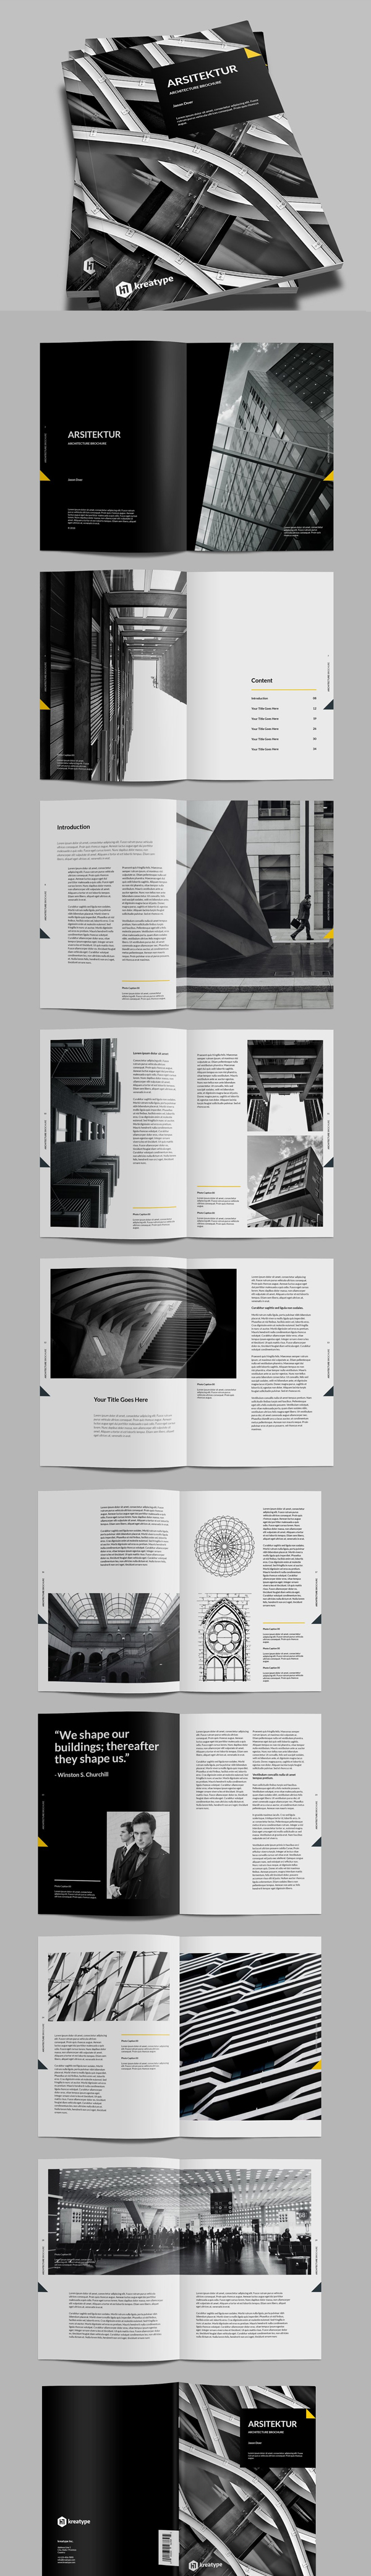 Multipurpose Brochure InDesign Template